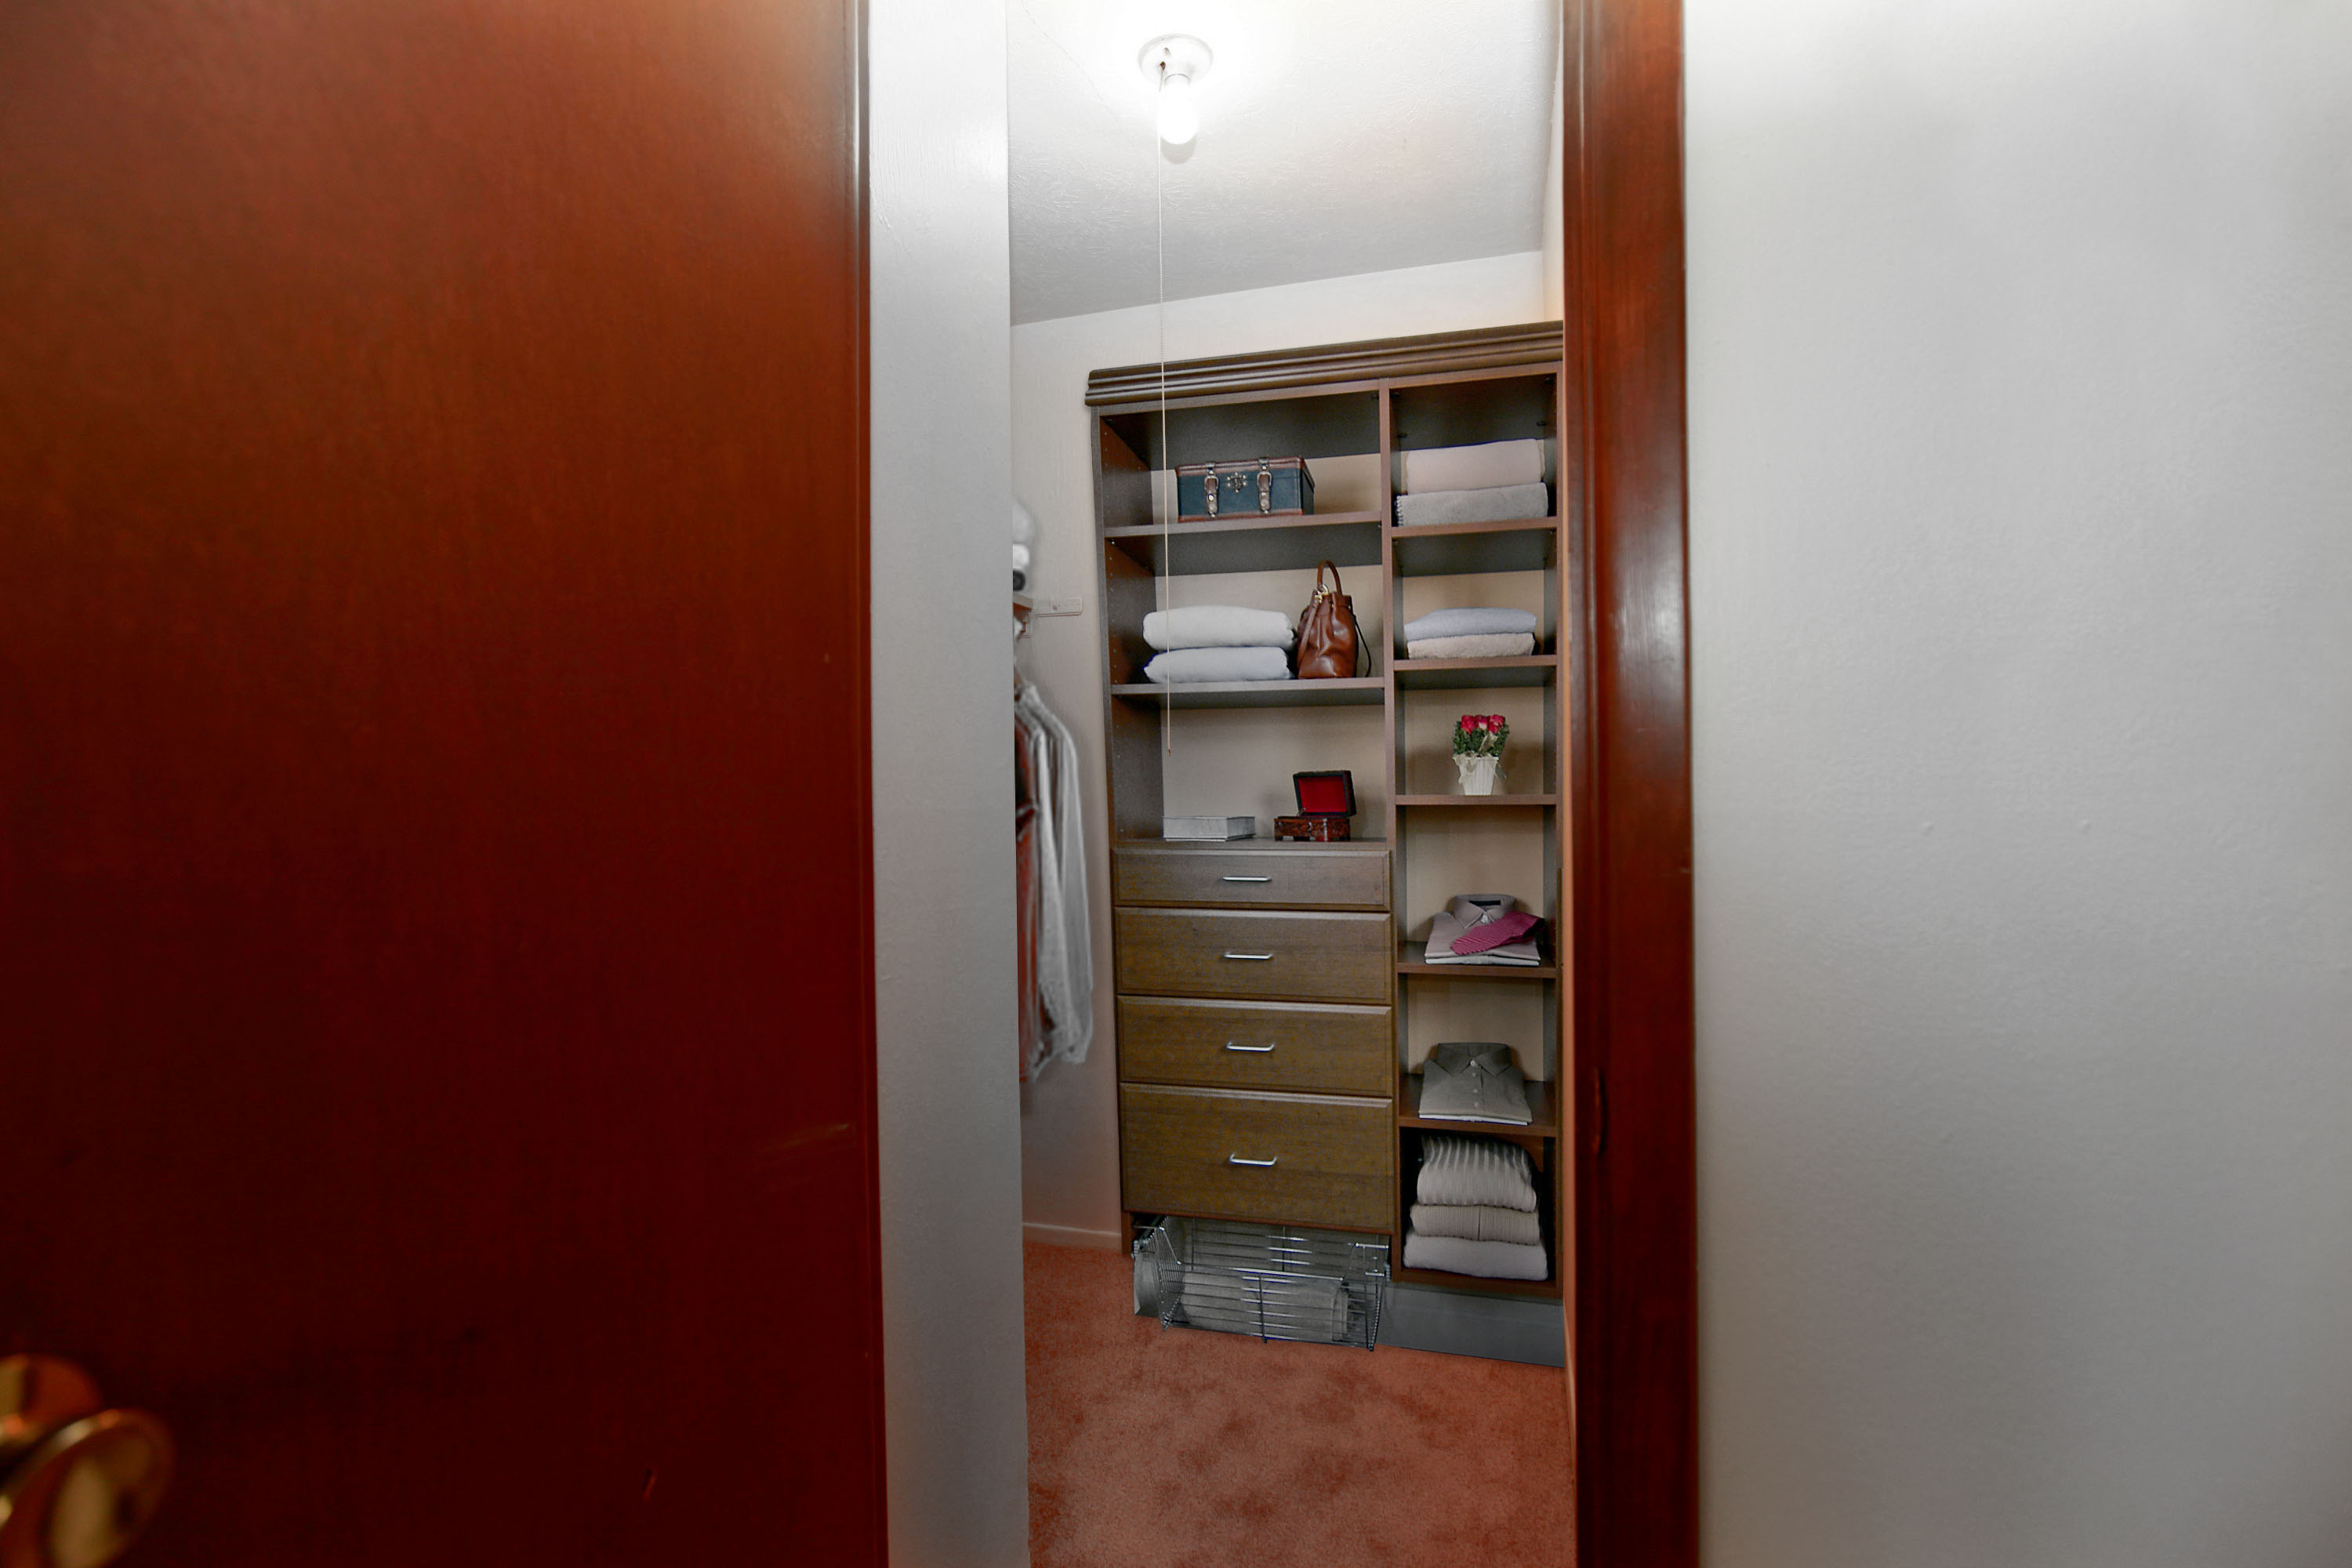 1B Walk-in Closet at the Greenridge on Euclid Apartments in Euclid, OH